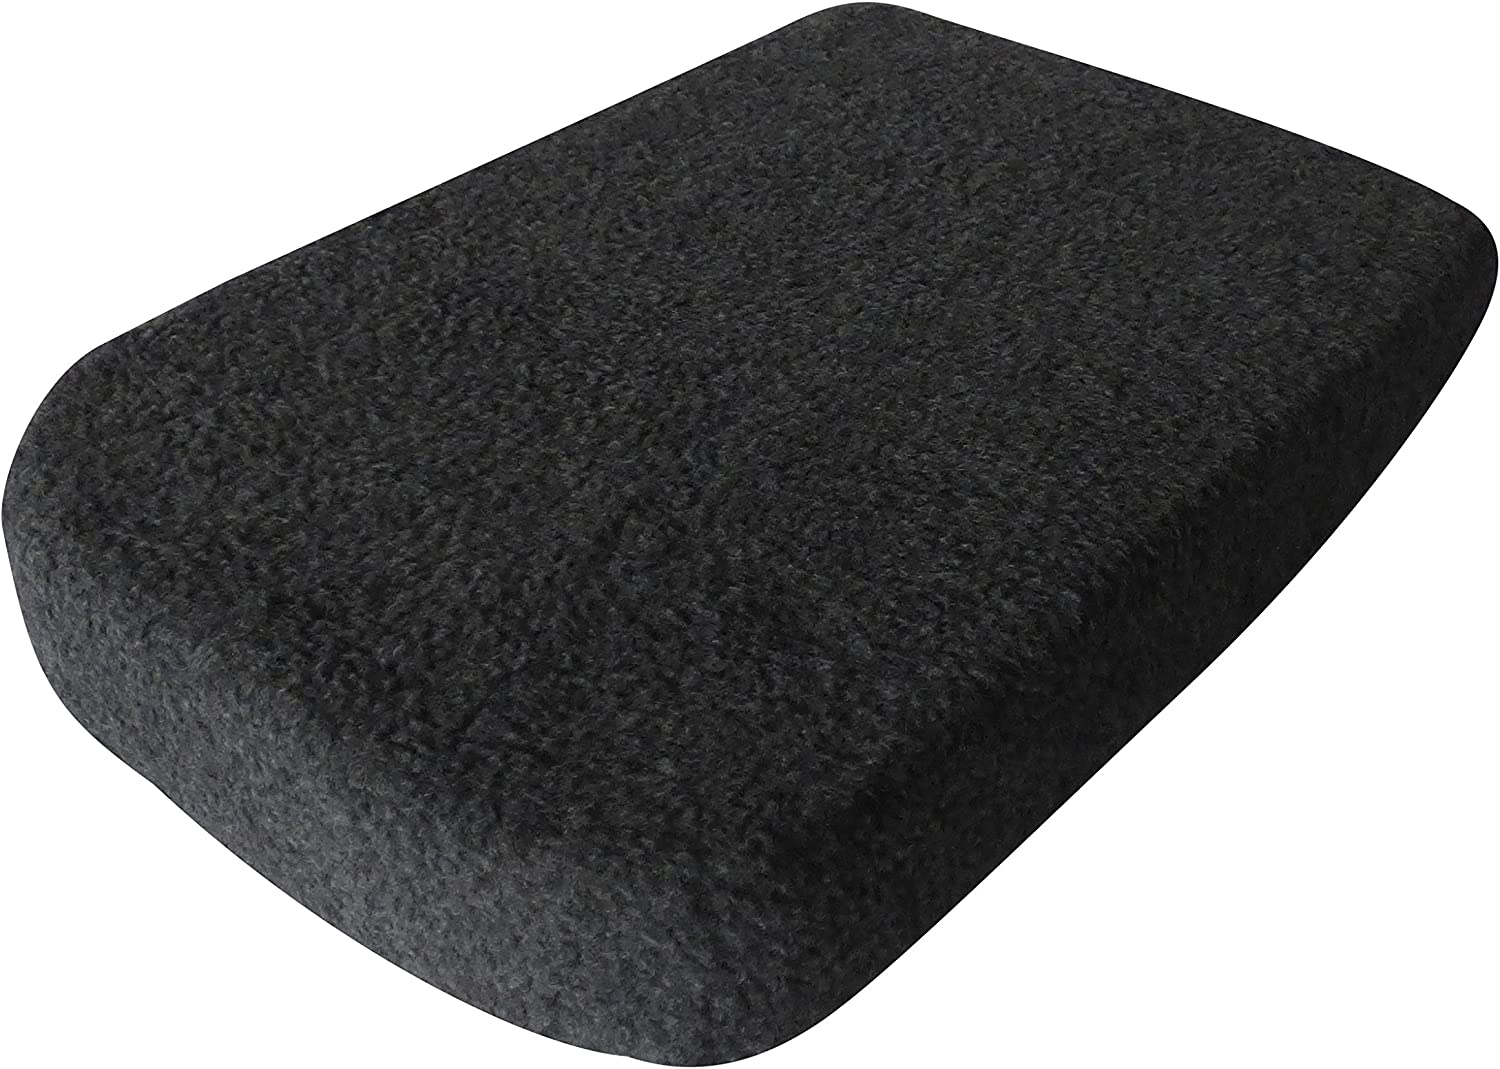 Sand Protects Console from Pets USA Seamstress Premium Fleece Console Cover for Toyota Tacoma 05/'-18/' Dirt Black and More